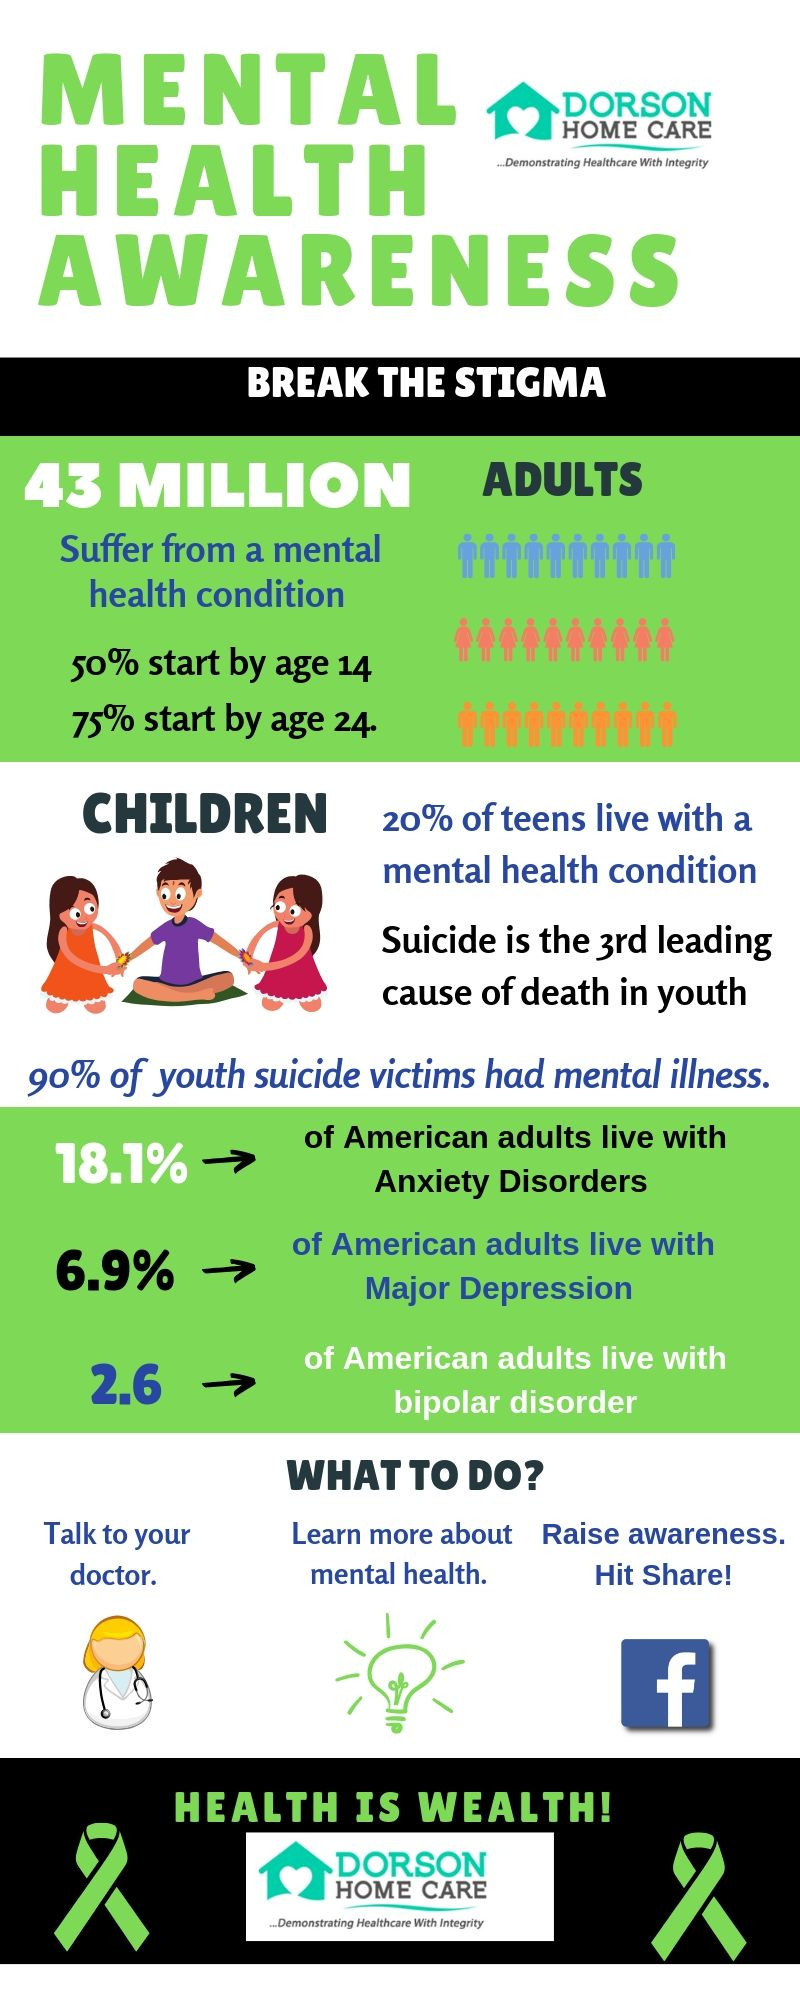 infographic by Dorson Home Care about mental health statistic and facts